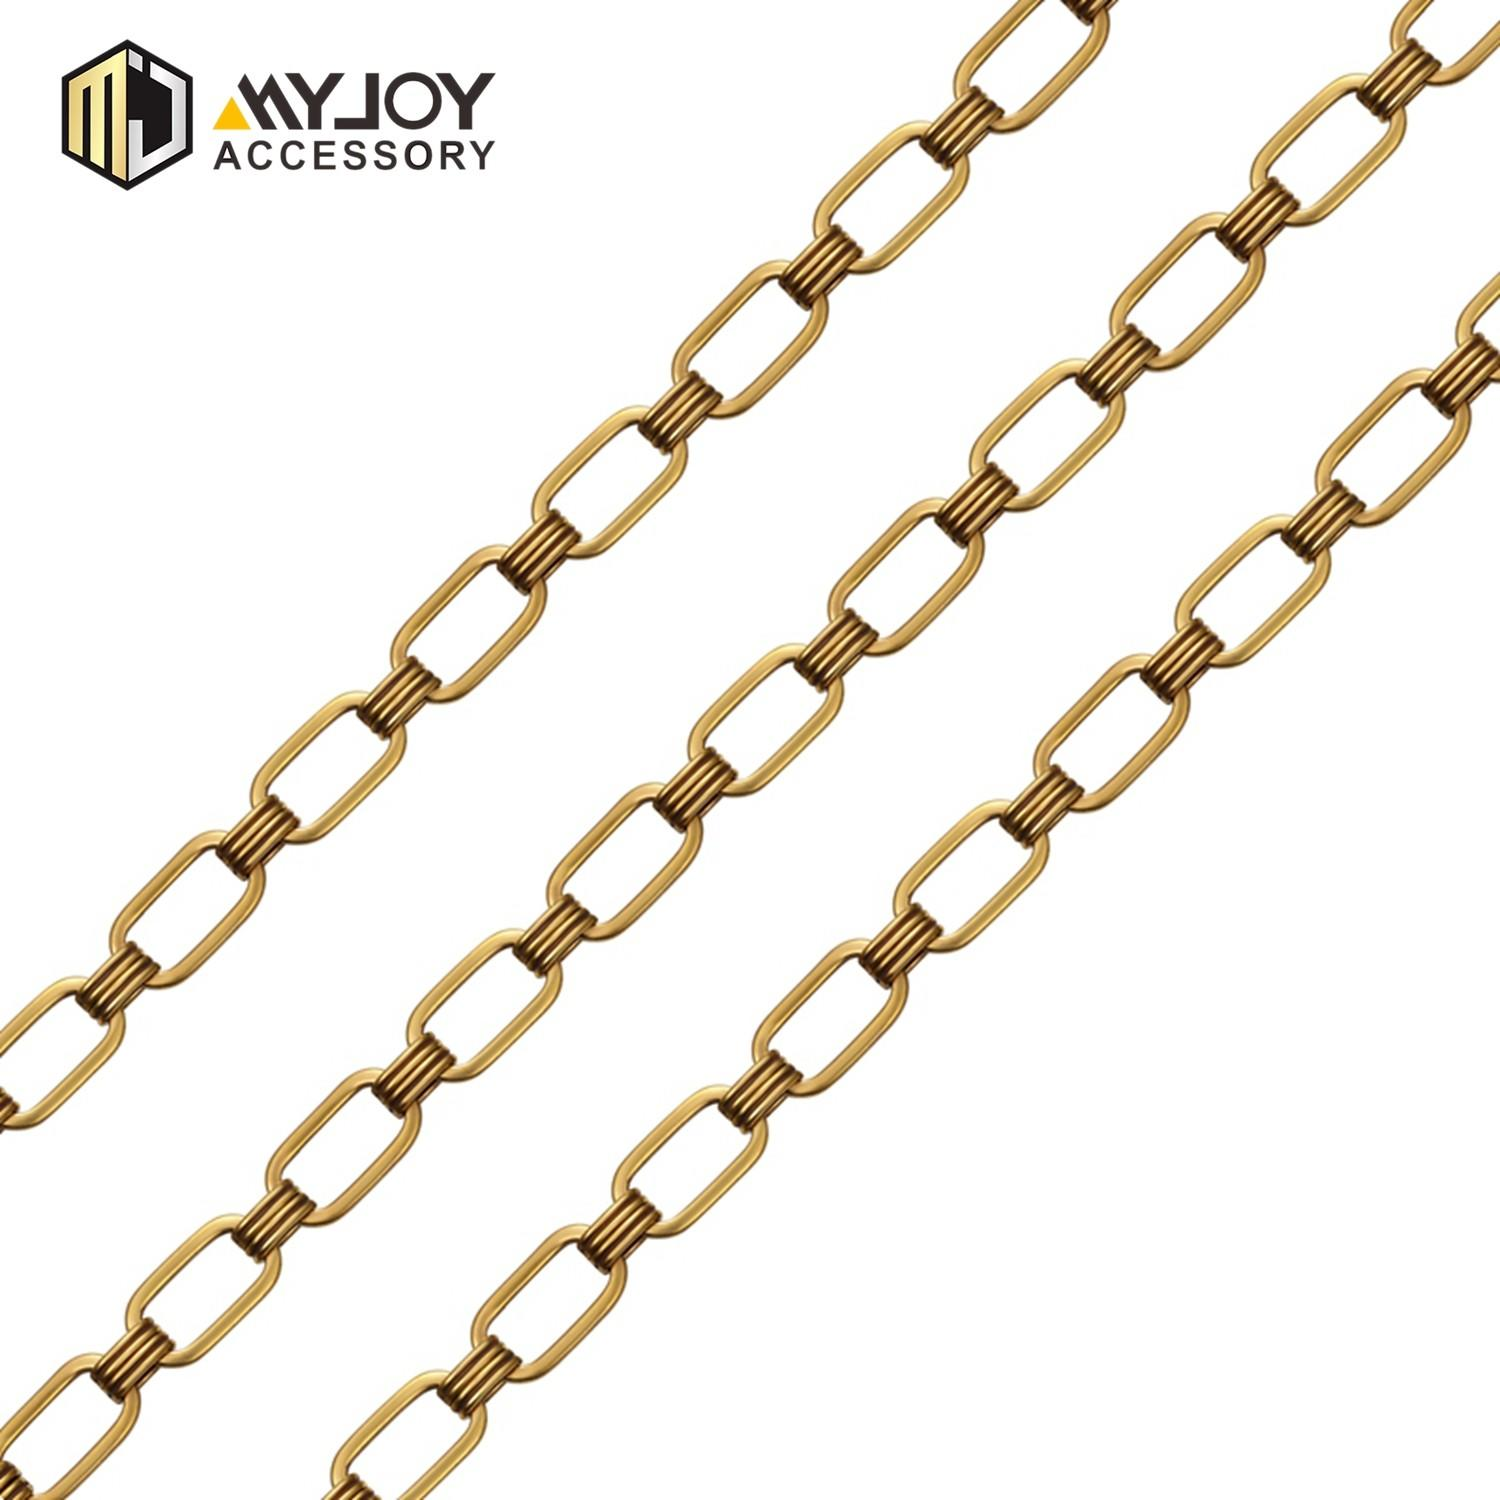 MYJOY High-quality chain strap supply for bags-3